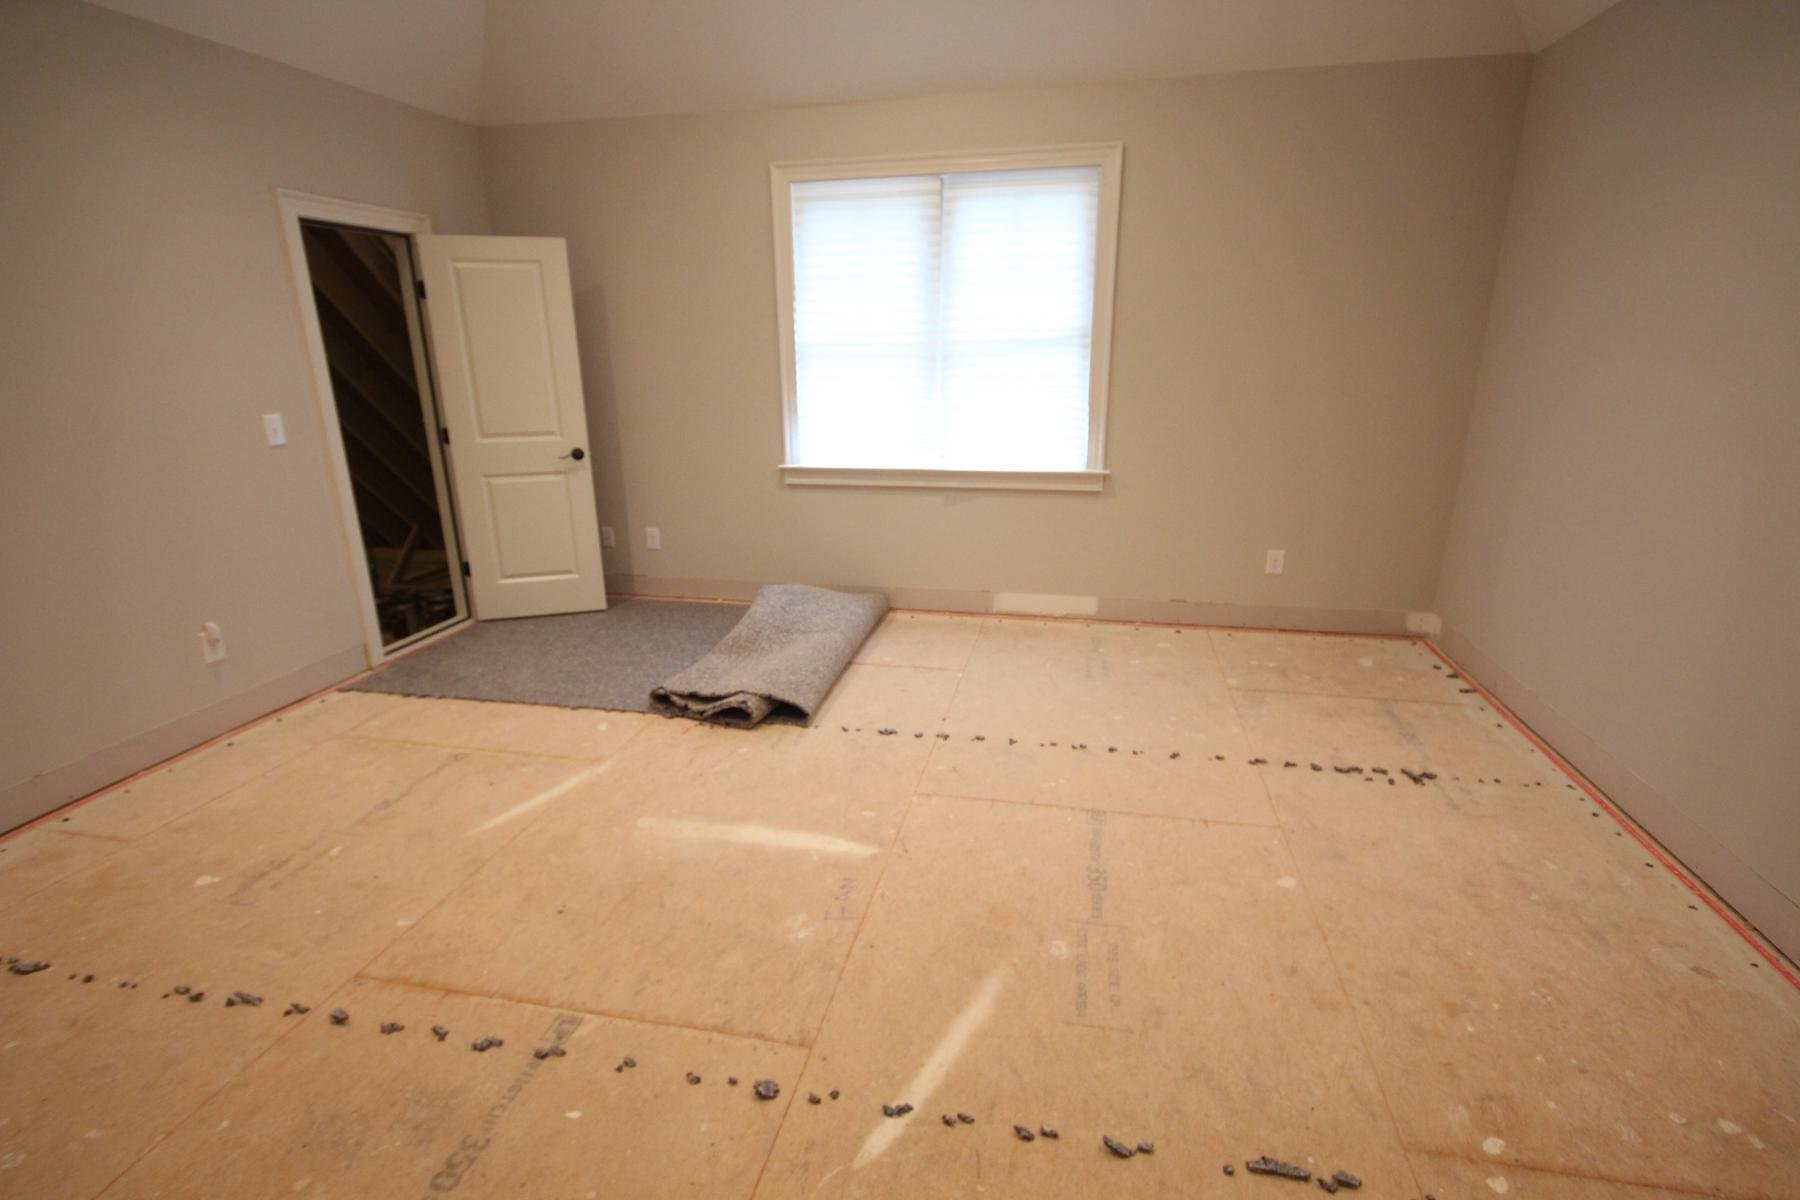 Click image for larger version  Name:Carpet Remove 2.jpg Views:23 Size:117.6 KB ID:1763409